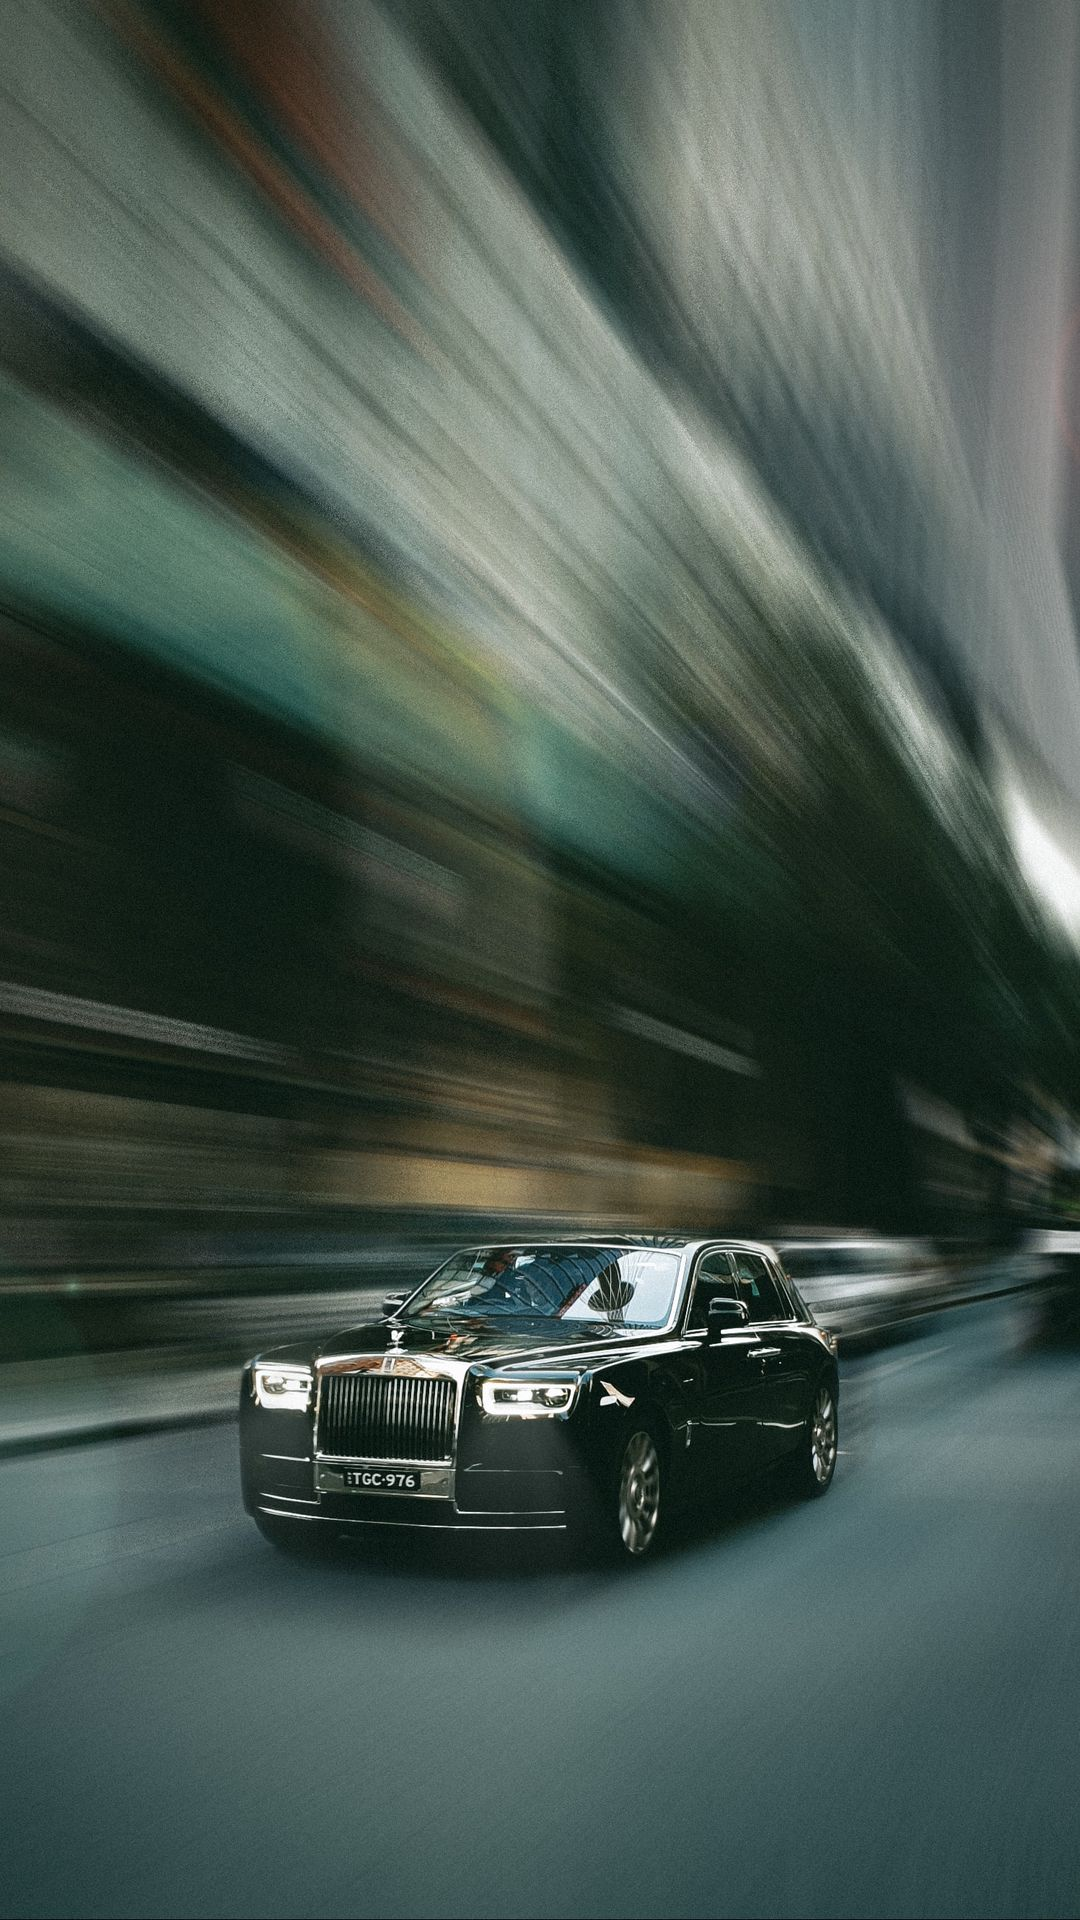 Rolls Royce HD Wallpapers Free Download for Mobile